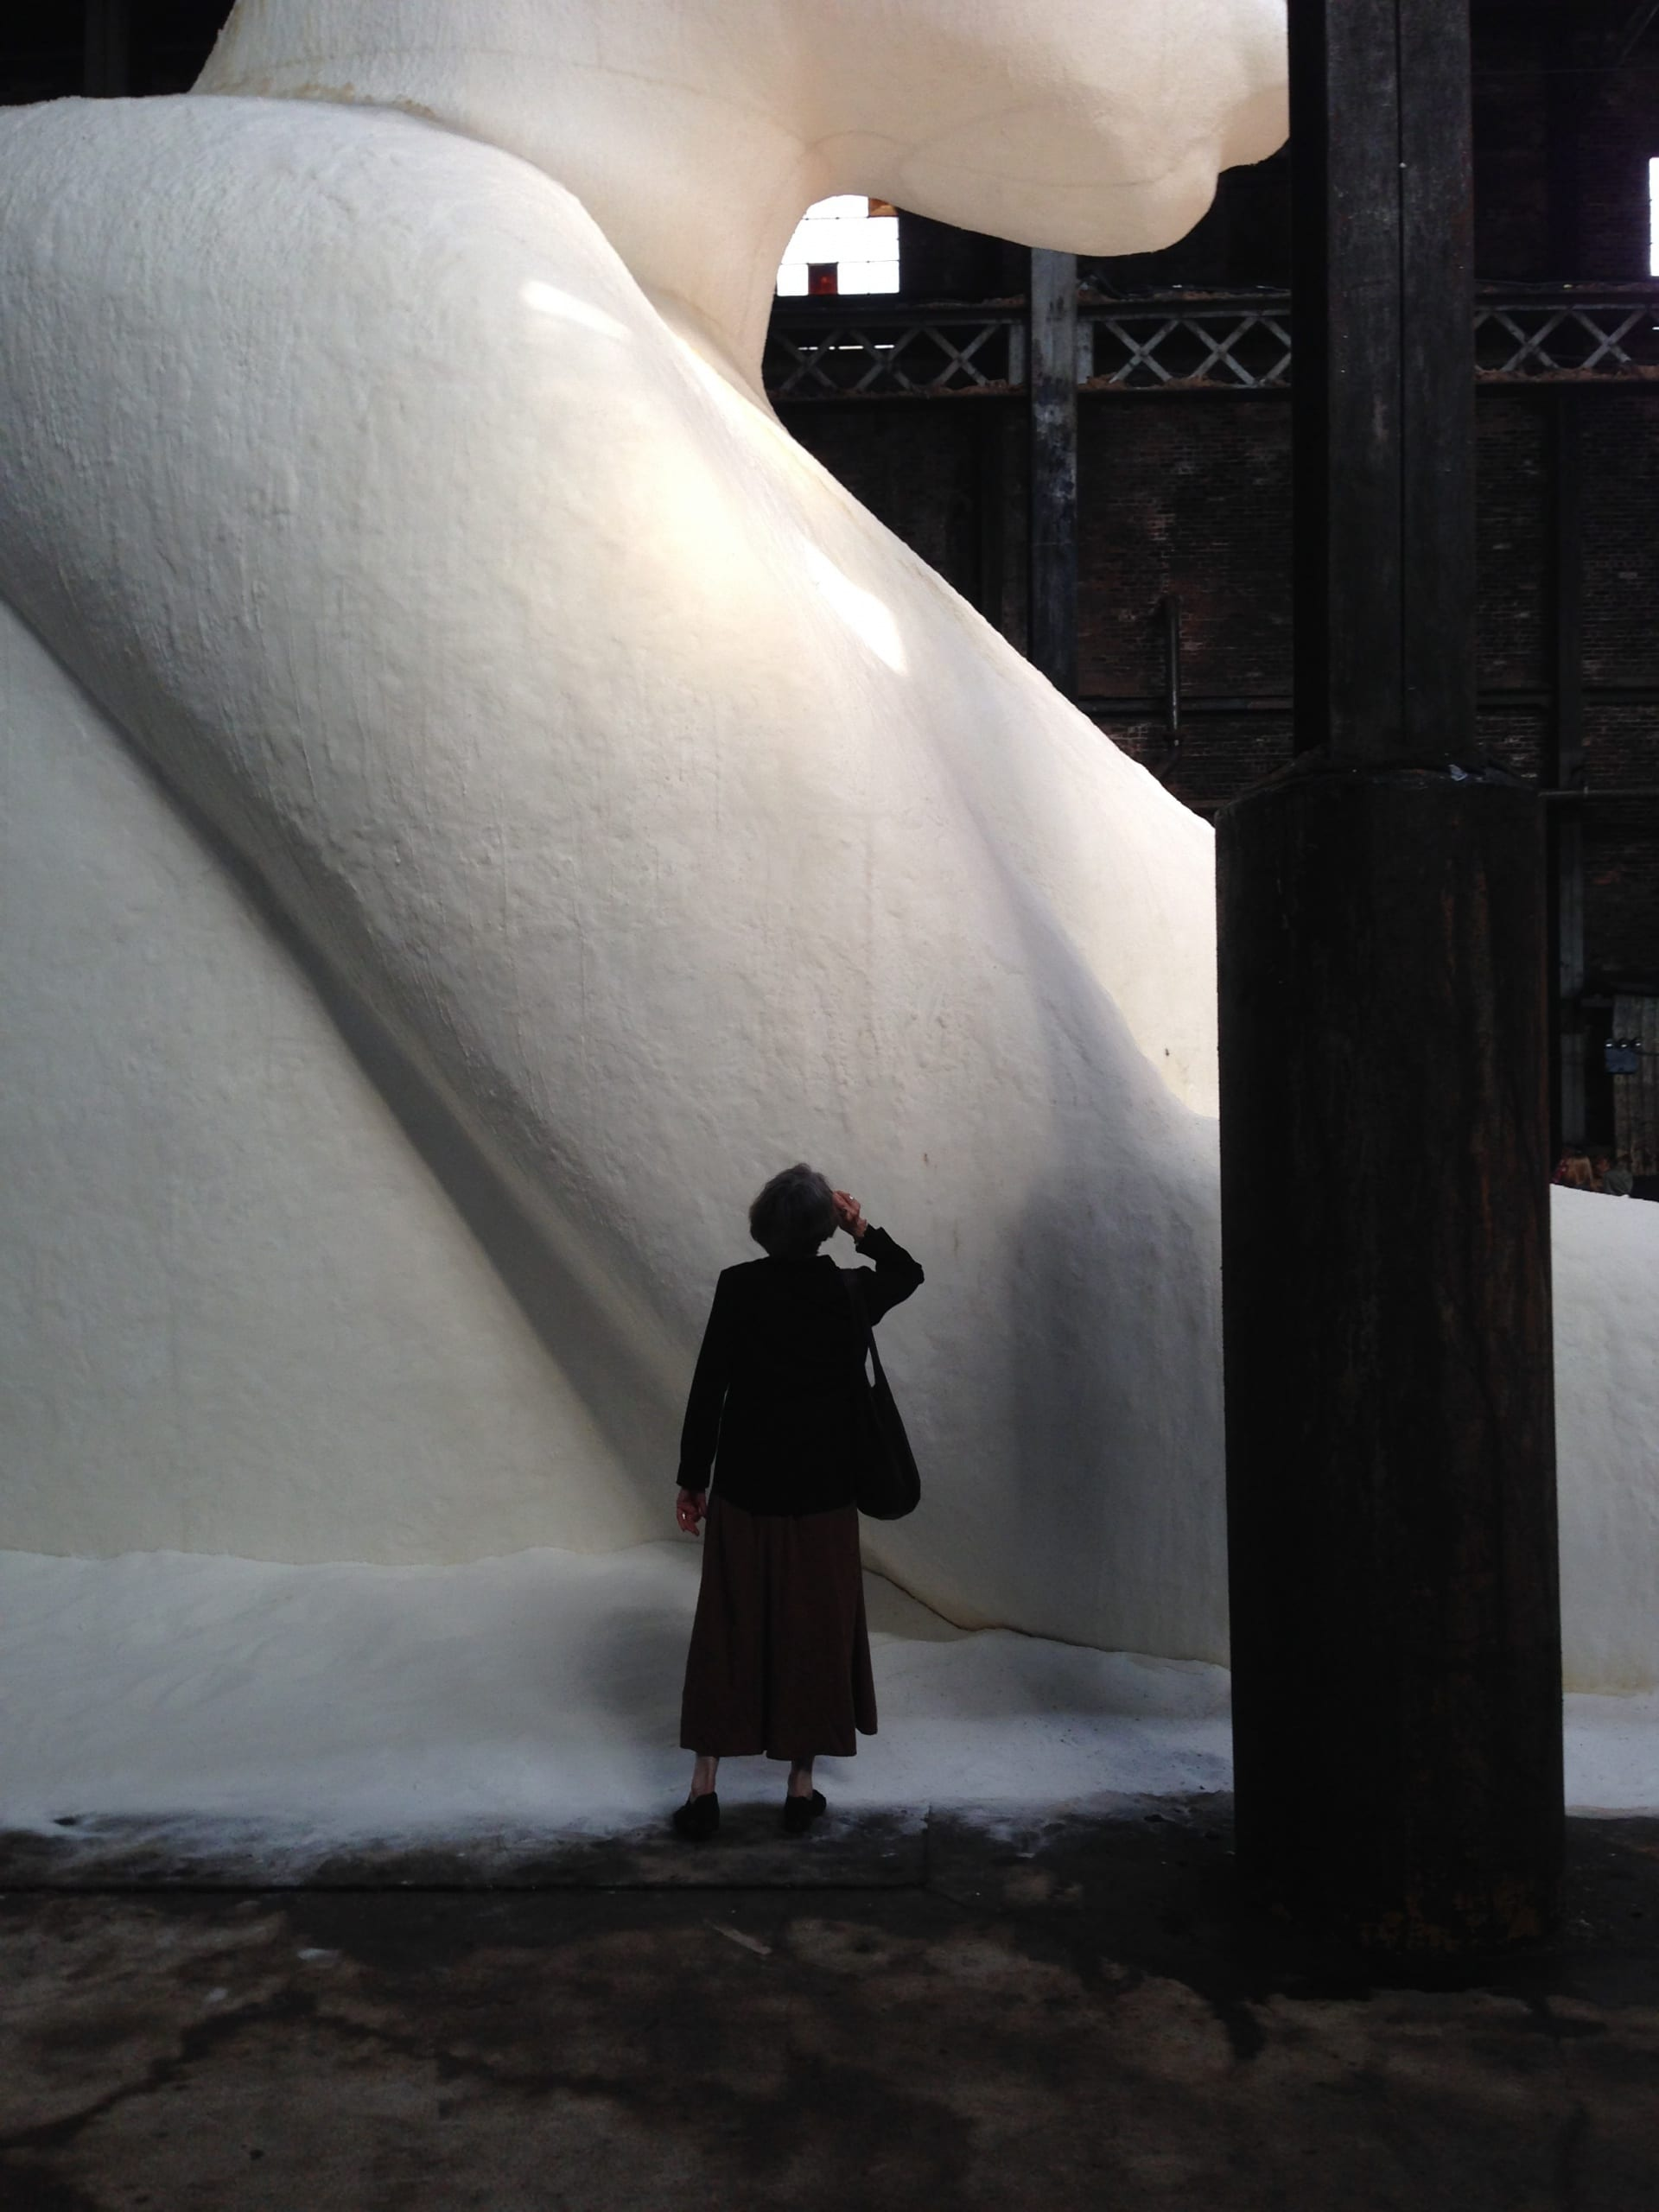 Profile of the sphinx made of cast sugar, with a woman silhouetted in the foreground